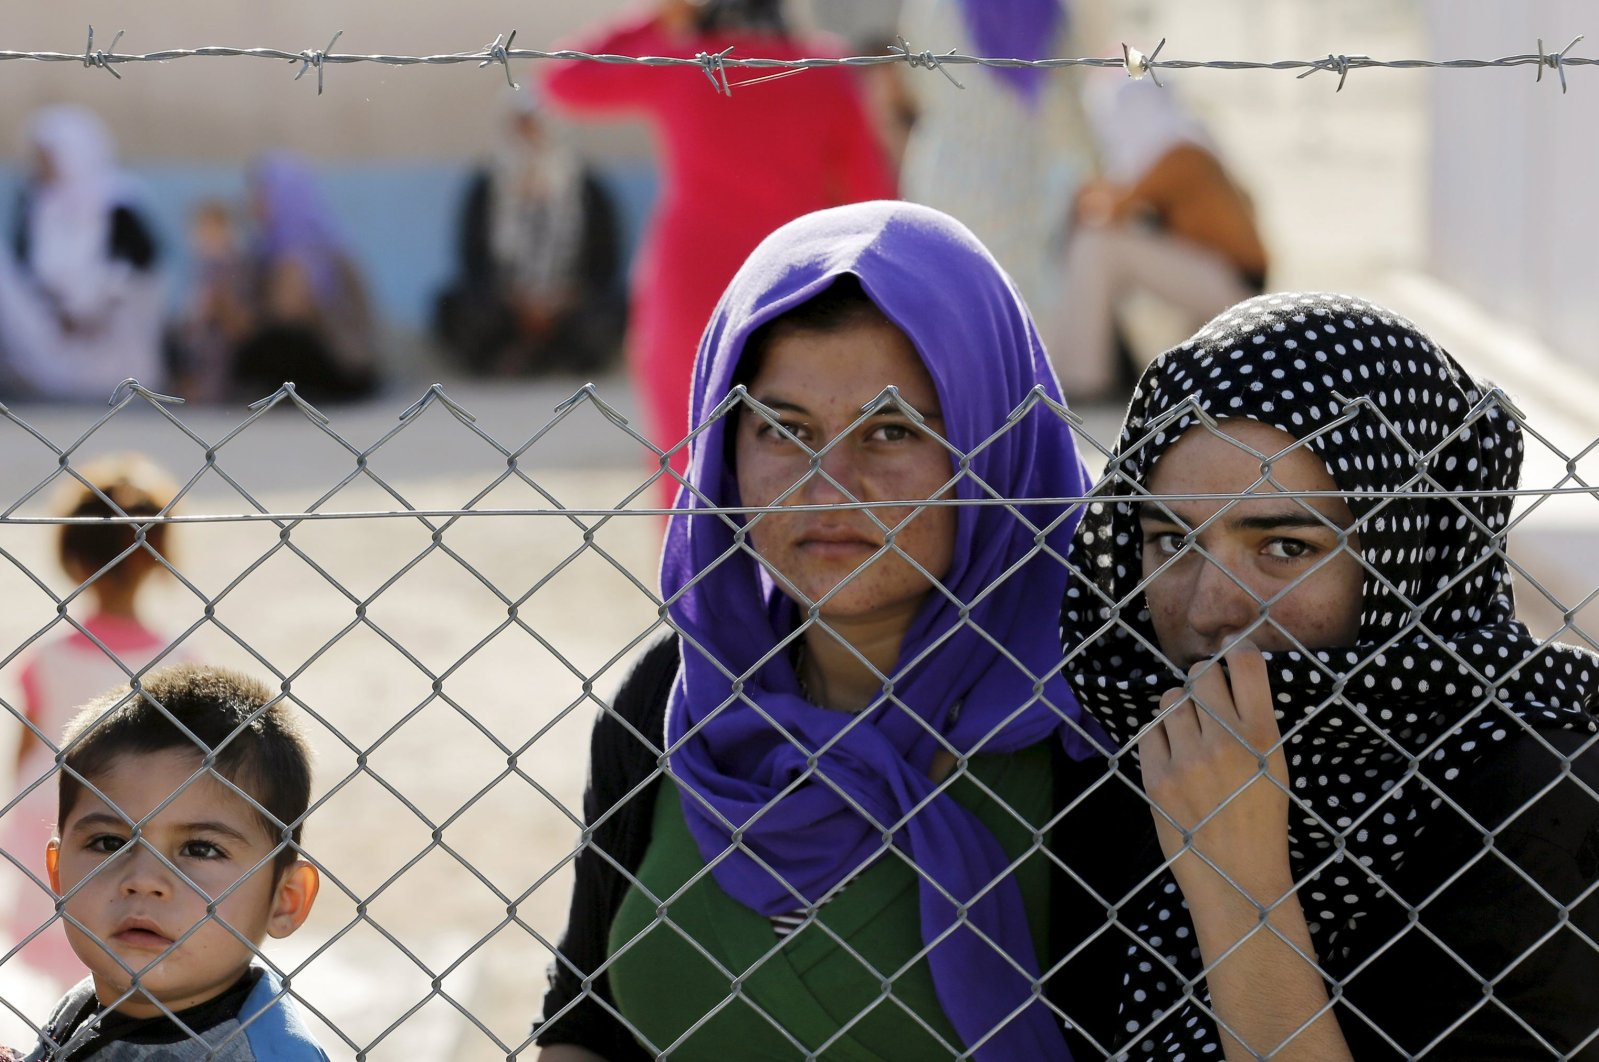 Yazidi refugees stand behind fences at a Syrian and Iraqi refugee camp in the town of Midyat in Mardin province, southeastern Turkey, June 20, 2015. (Reuters Photo)